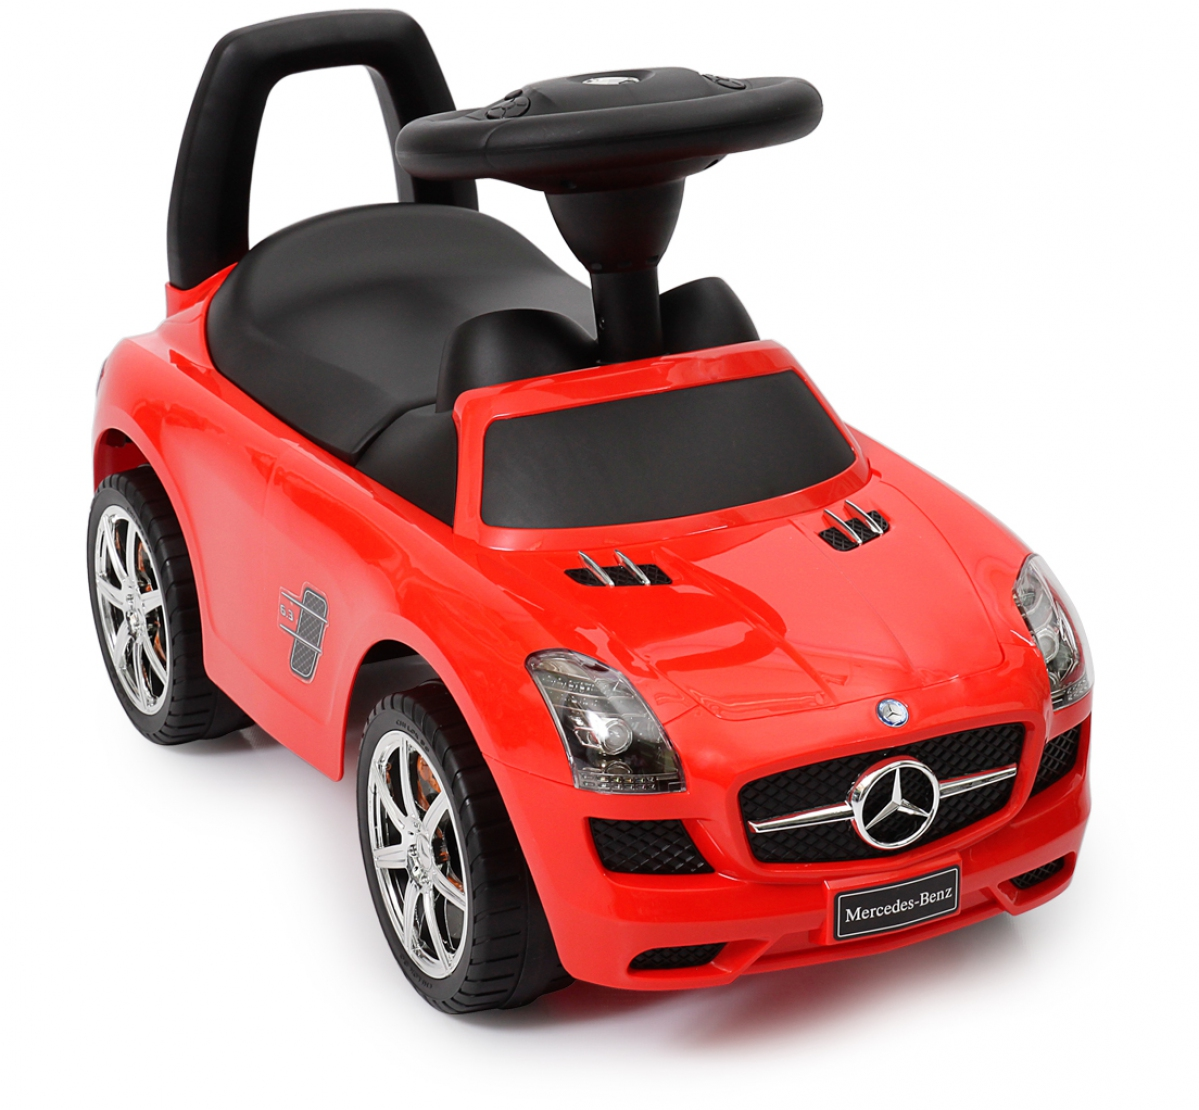 23081 mercedes benz ride on car ride on car for Mercedes benz ride on car